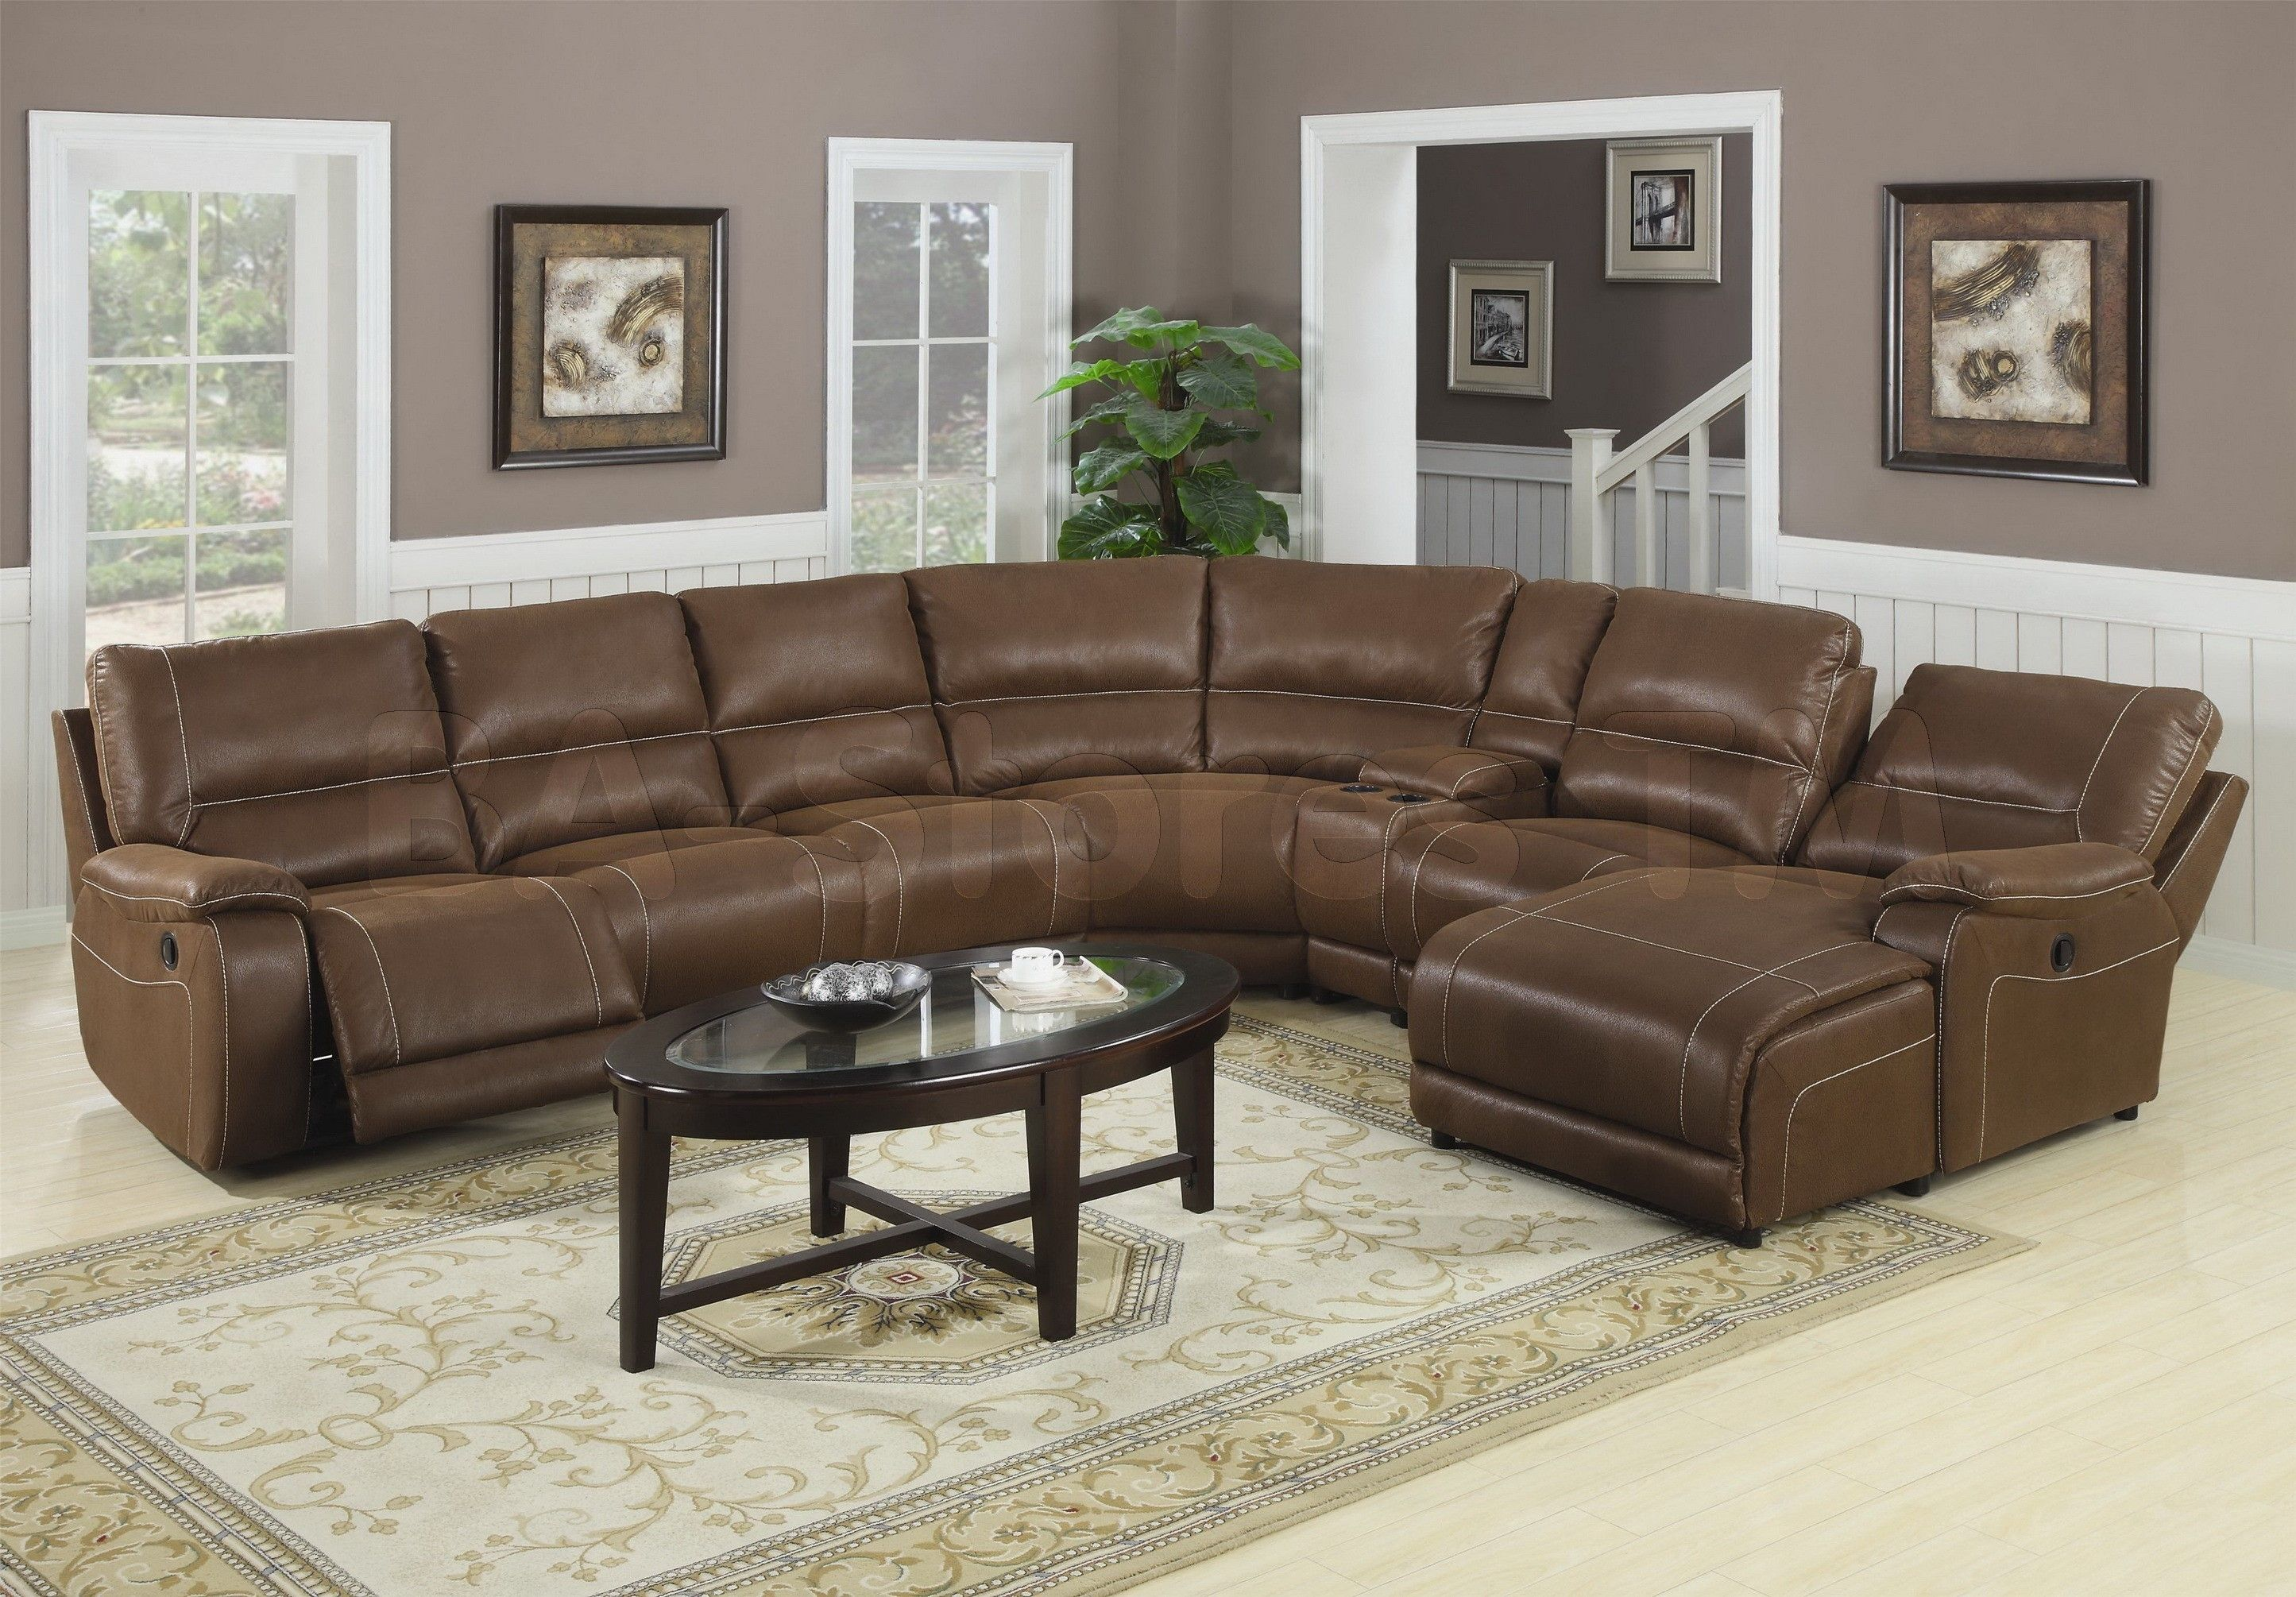 Extra Large Leather Sectional Sofas Sectional Sofa With Recliner